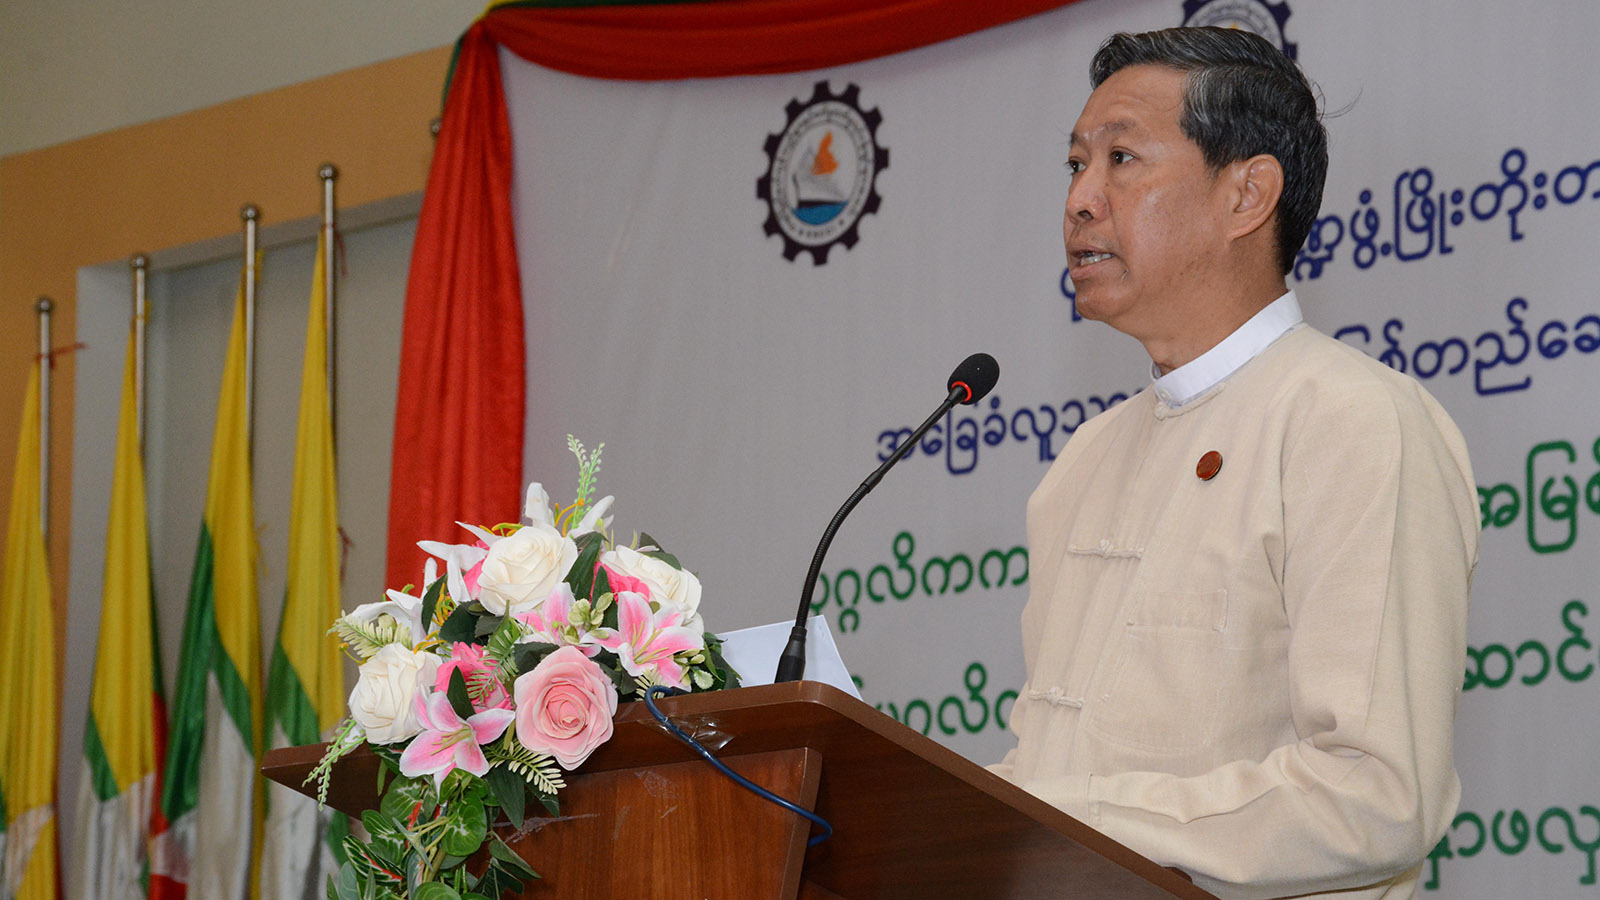 Union Minister Dr Myo Thein Gyi delivers the speech at the seminar held to develop coordination programmes between the government and private sectors for human resource development. Photo:MNA